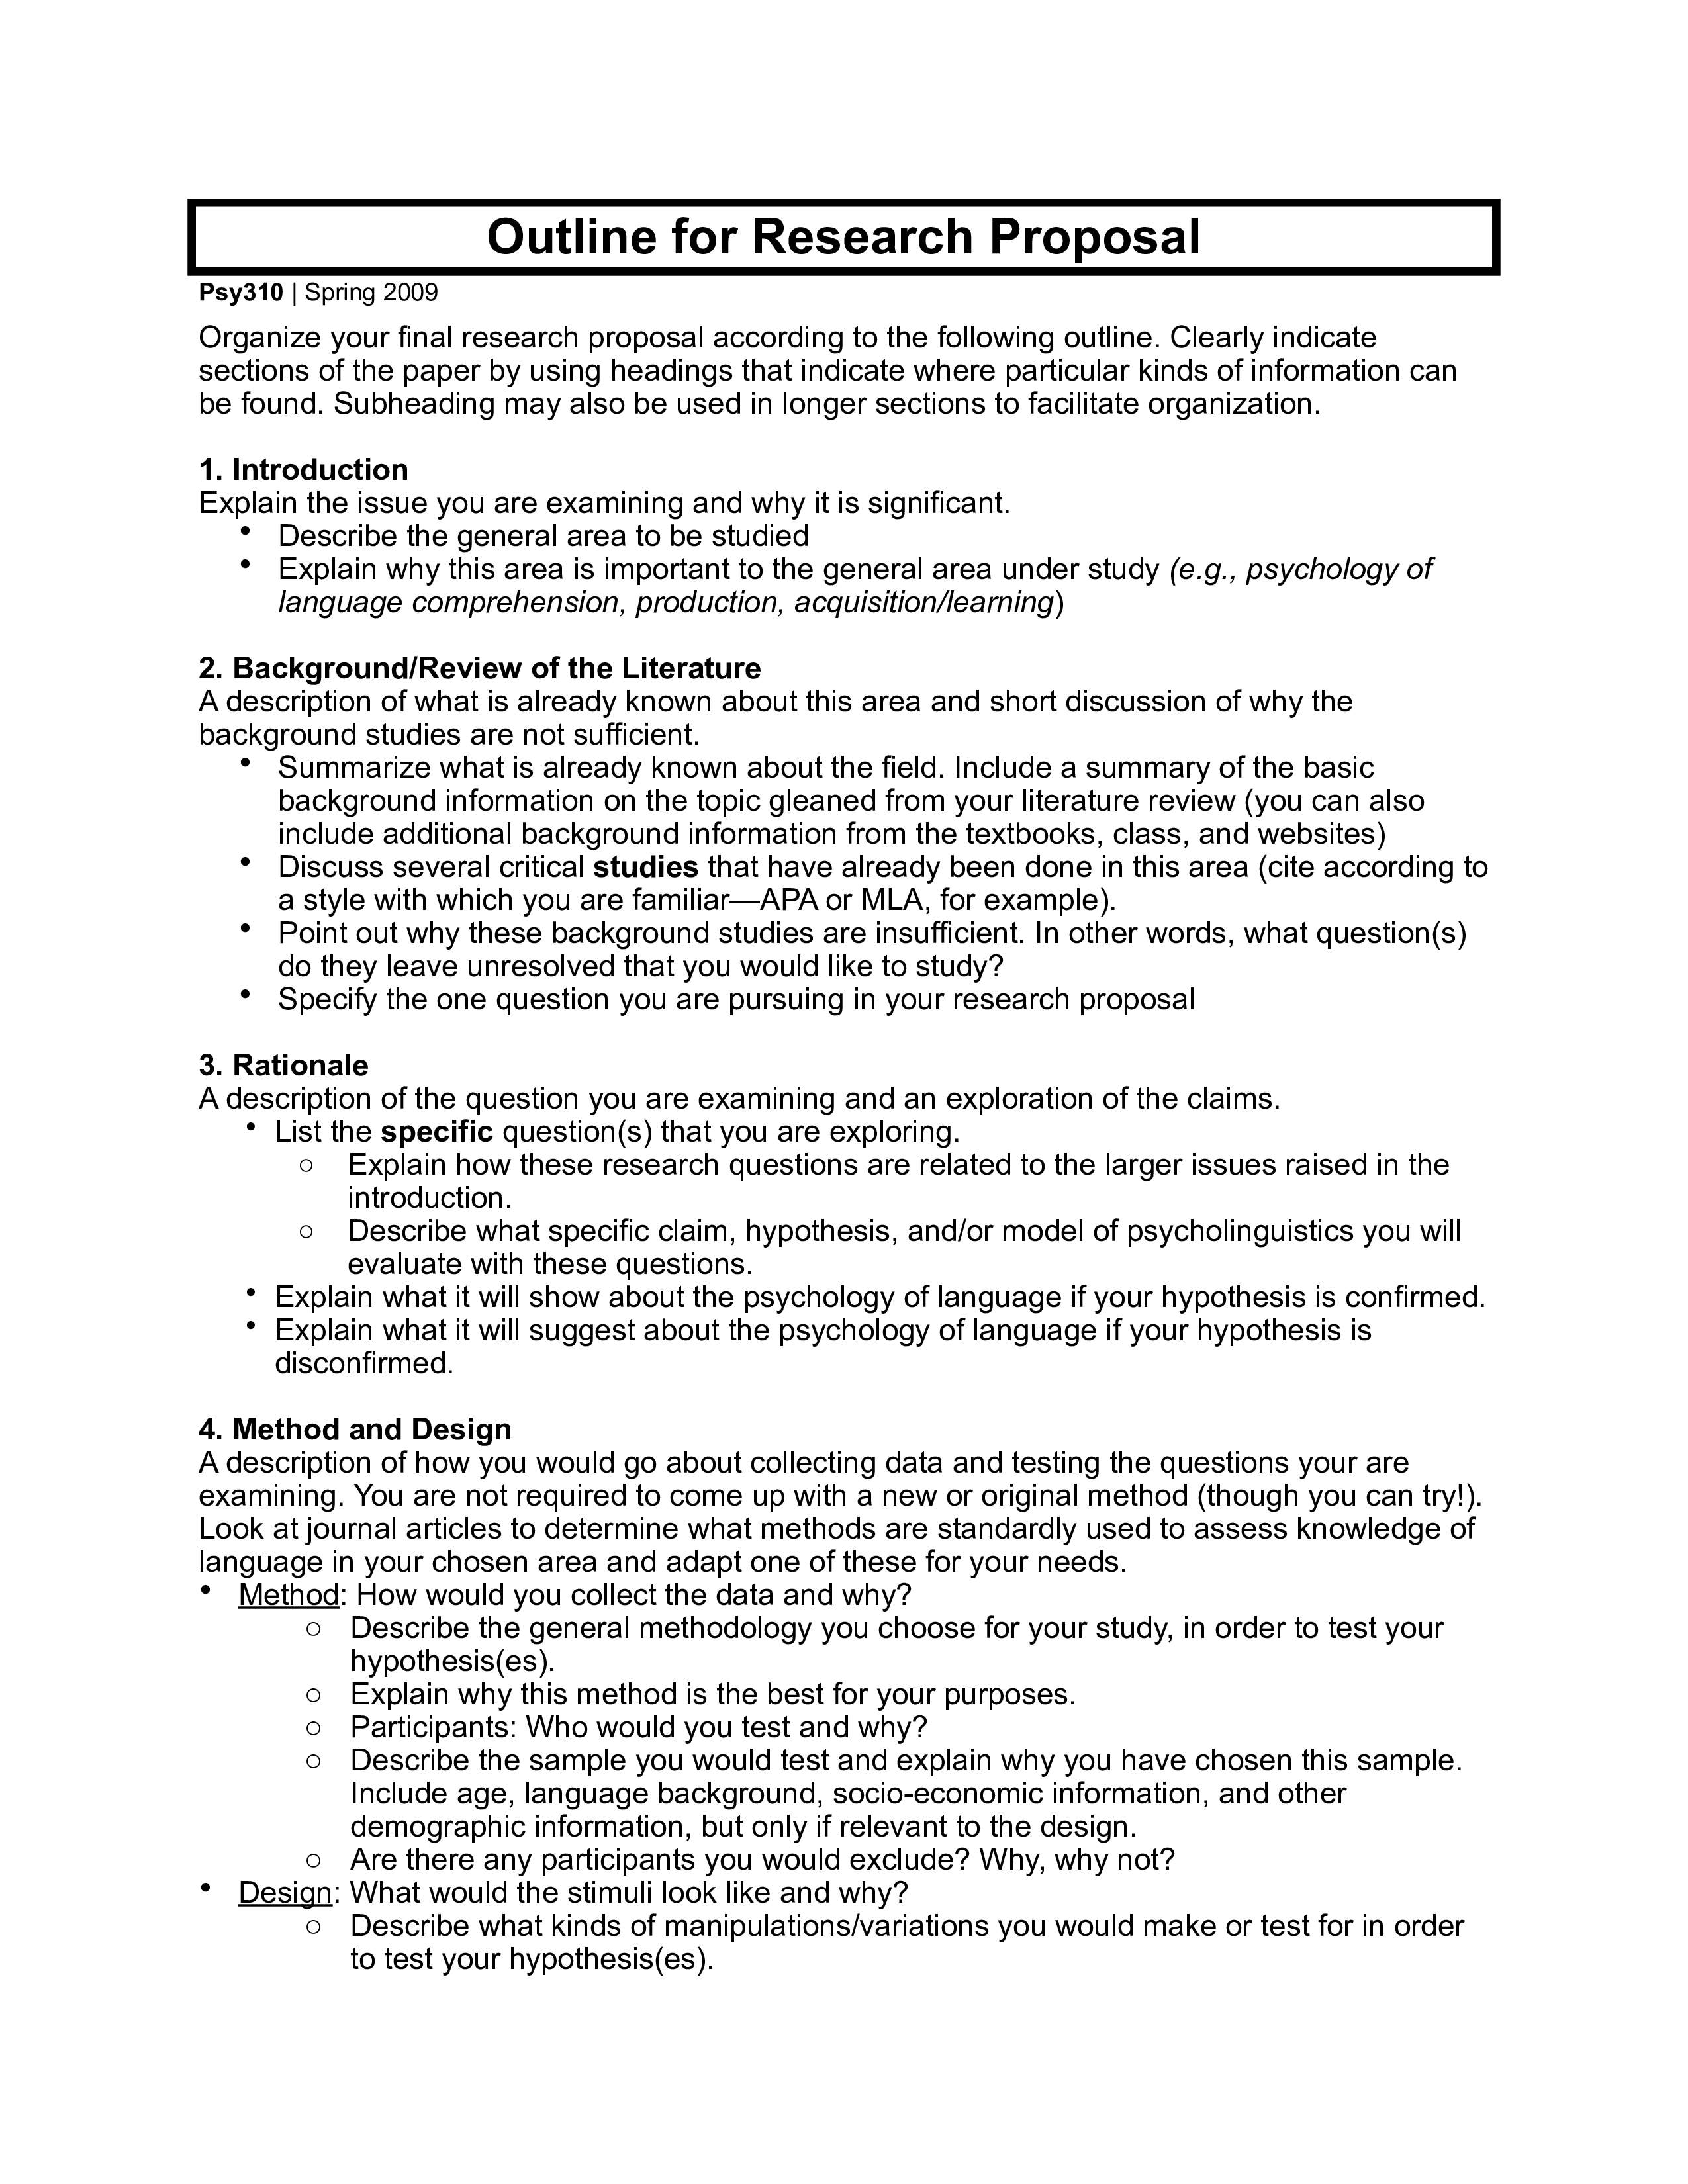 Research Proposal Outline Example  Templates At In Research Proposal Outline Template